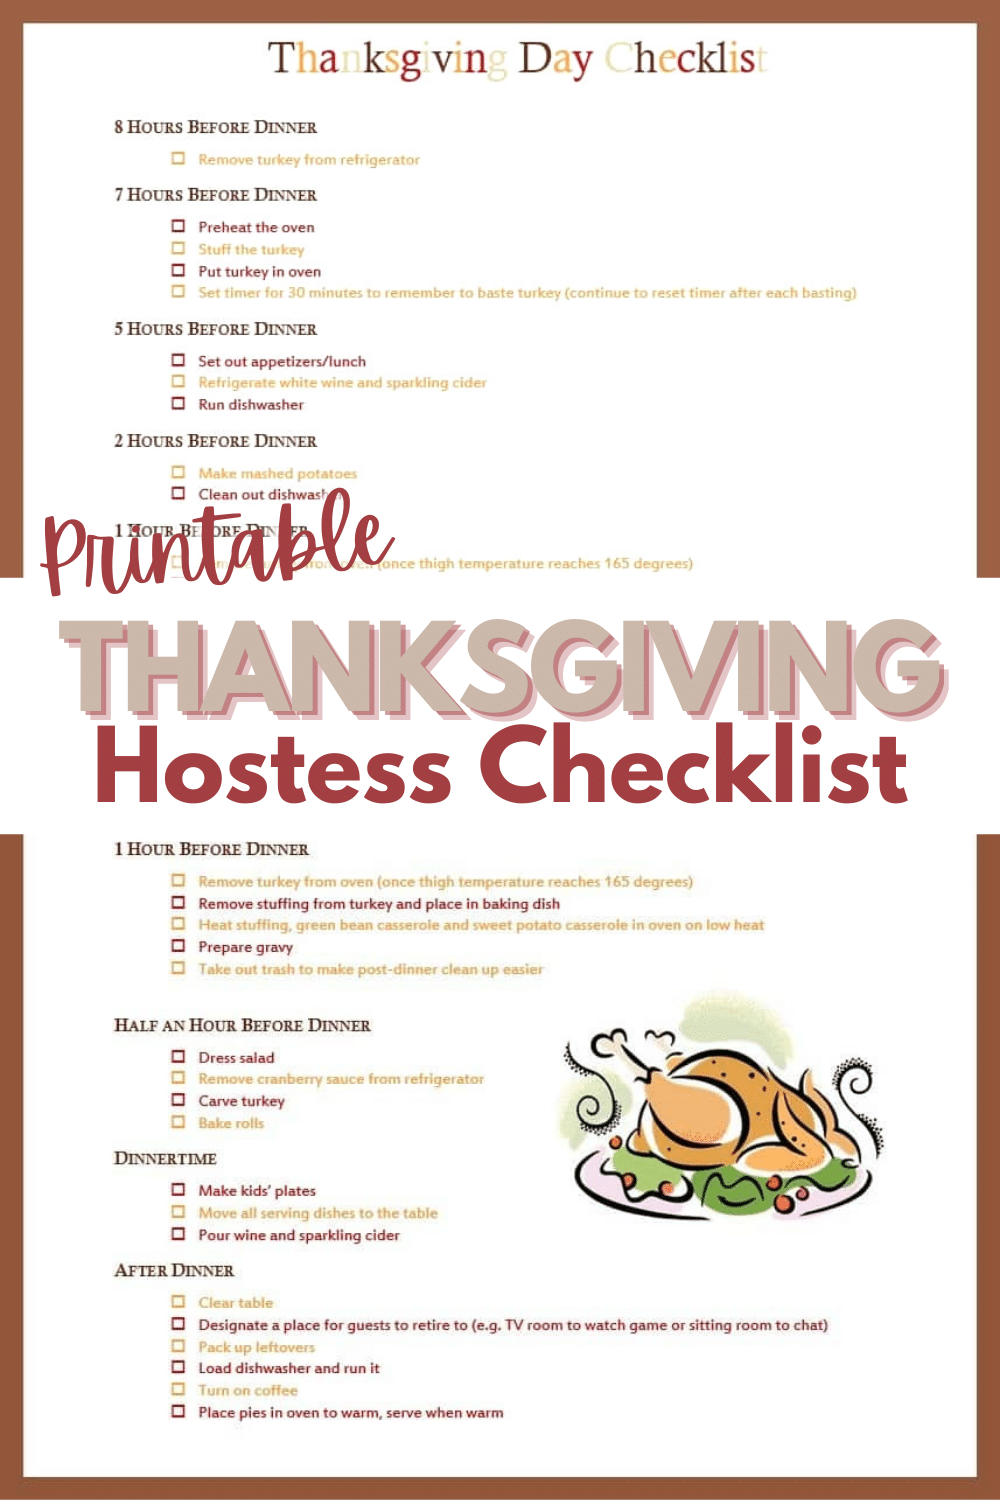 This 3-page Thanksgiving Checklist will help you plan every detail of your holiday feast so that you'll still have time to enjoy your own party. #thanksgiving #thanksgivingdinner #checklist #printable via @wondermomwannab